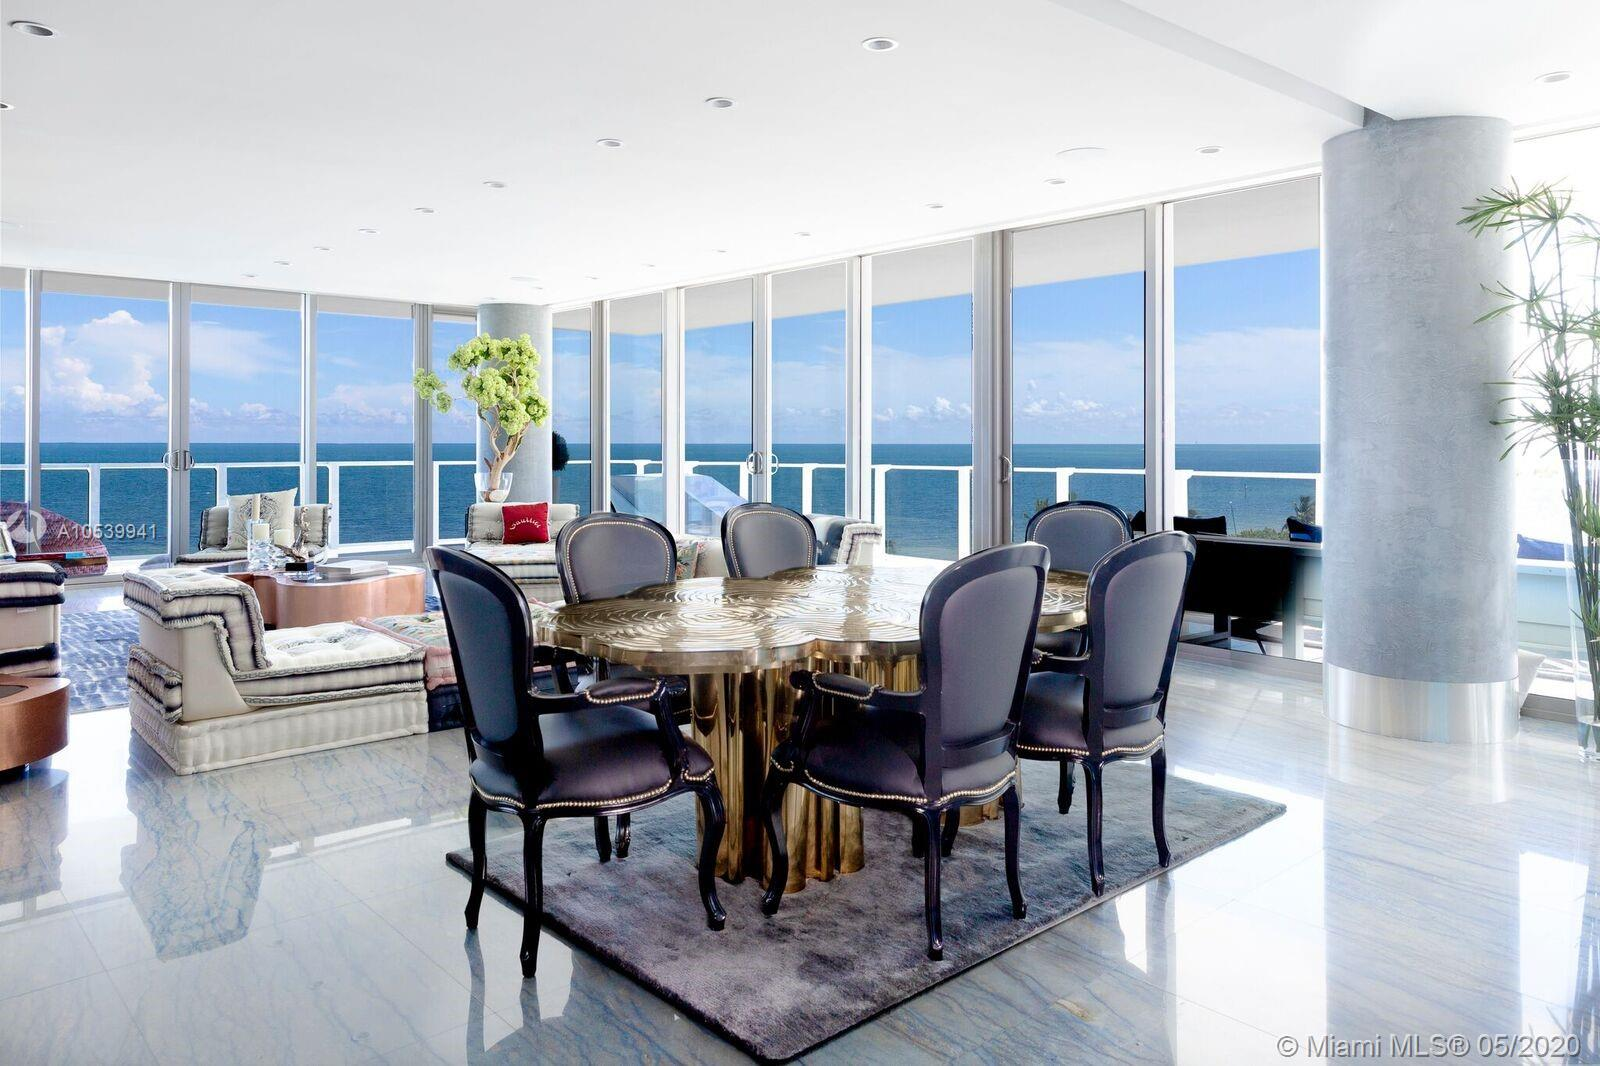 One of its kind corner unit with views of Ocean, Bay,City Skyline, Sunrise & Sunset. 4,080sf under AC (4 units). Flow-through corner unit w/ 2000sf wrap-around terrace. 4BED+7.5BATH + maids quarters. Master Bath His & Hers marble thru-out with stainless steel bathtub with views of the ocean. Finished floors with top of the line Italian Marble. Finished to perfection! Exclusive Boutique Resort Lifestyle with Spa facilities, Fitness center, lap pool, Infinity pool with Restaurant,Tennis clay court, Putting green, kids room, tv room and party room with kitchen facilities. 24hrs. concierge, gated security, valet. Definitely the Best building in KB. I could describe this corner unit as your glass mansion on the ocean in paradise !